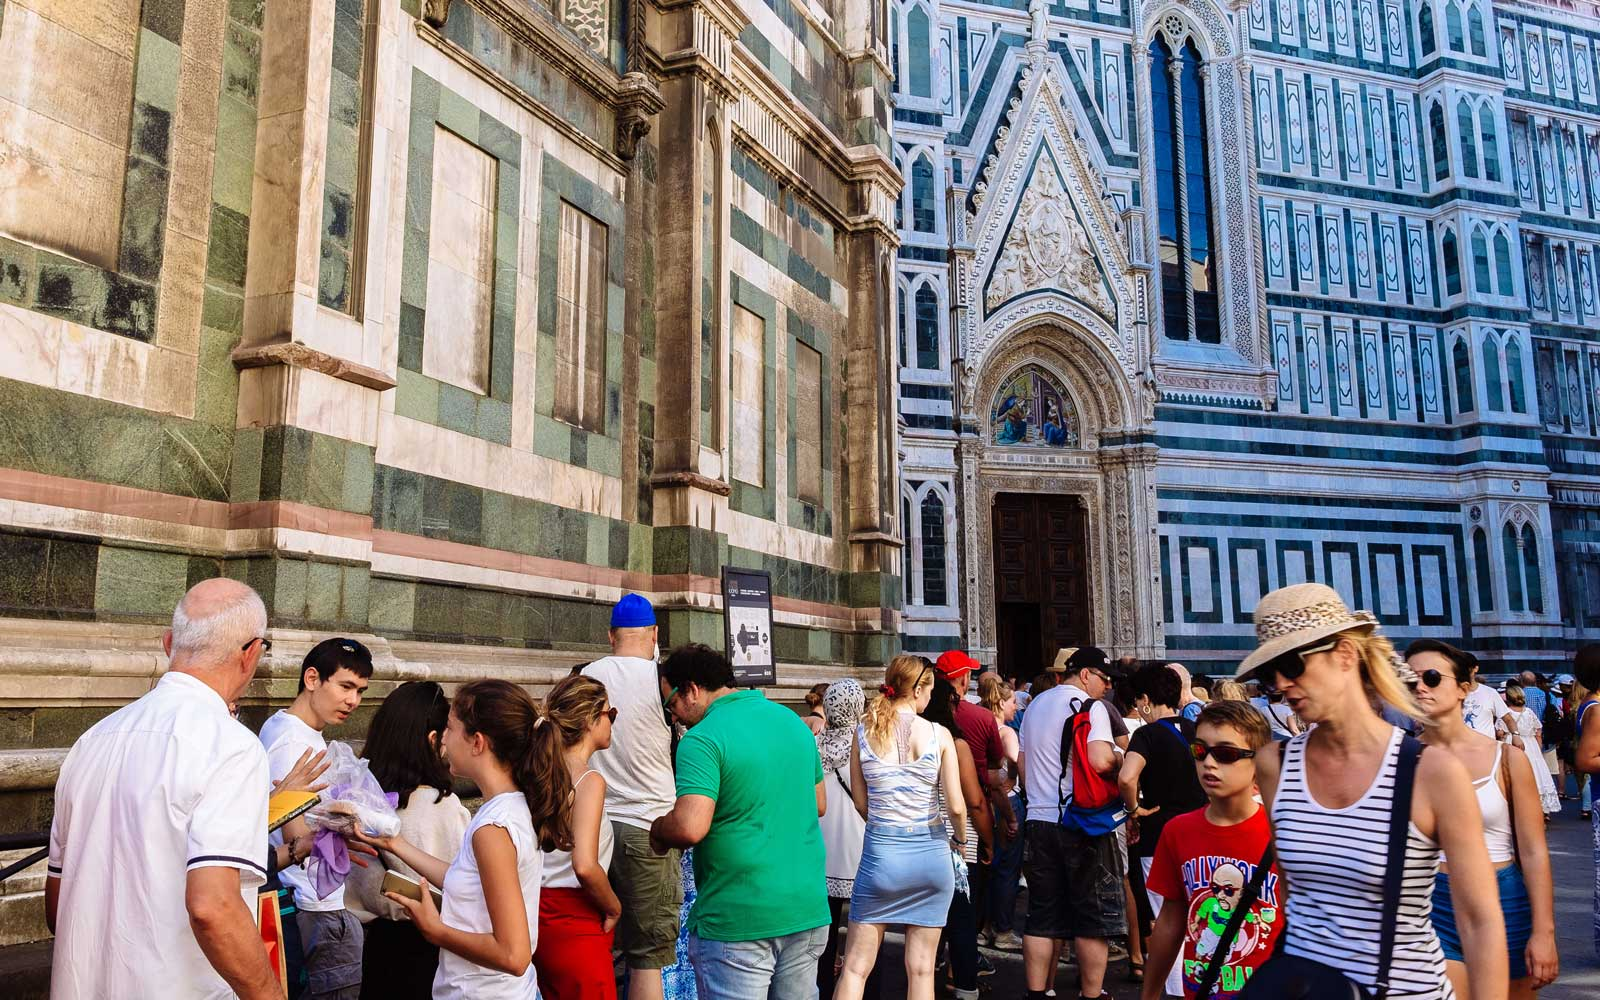 Florence, Italy tourists